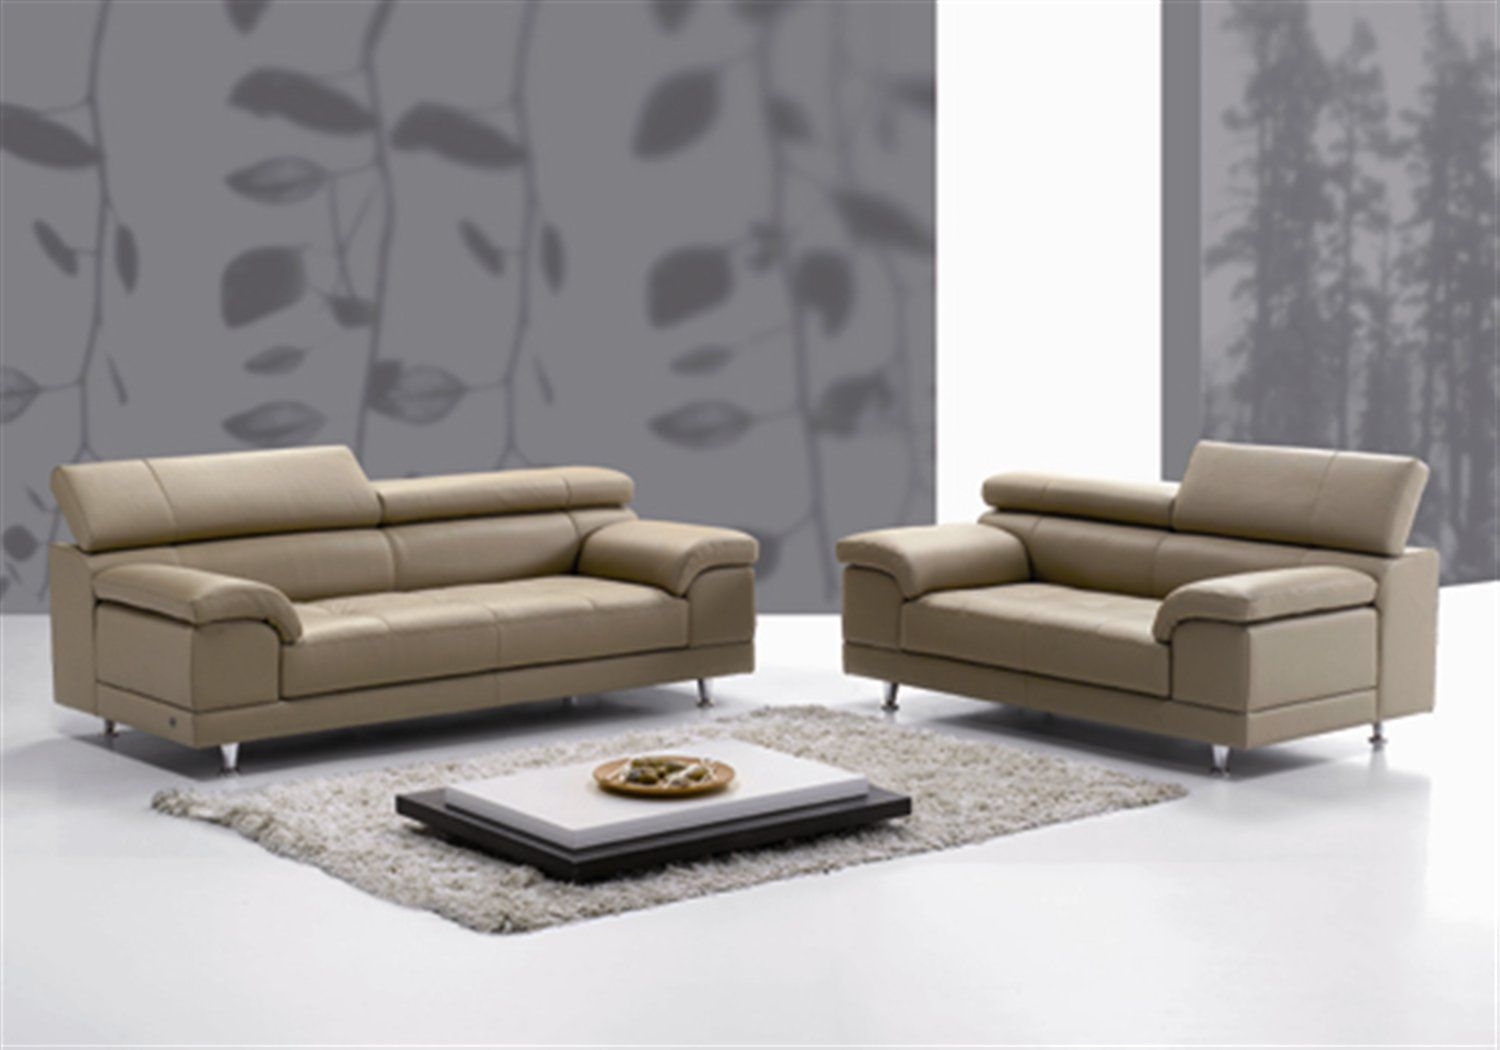 Deluxe Italian Sofas For Classical Interior Theme : Stunning Piquattro Leather  Italian Sofas Idea Ground Coffee Table With Using Cream Color. Part 90